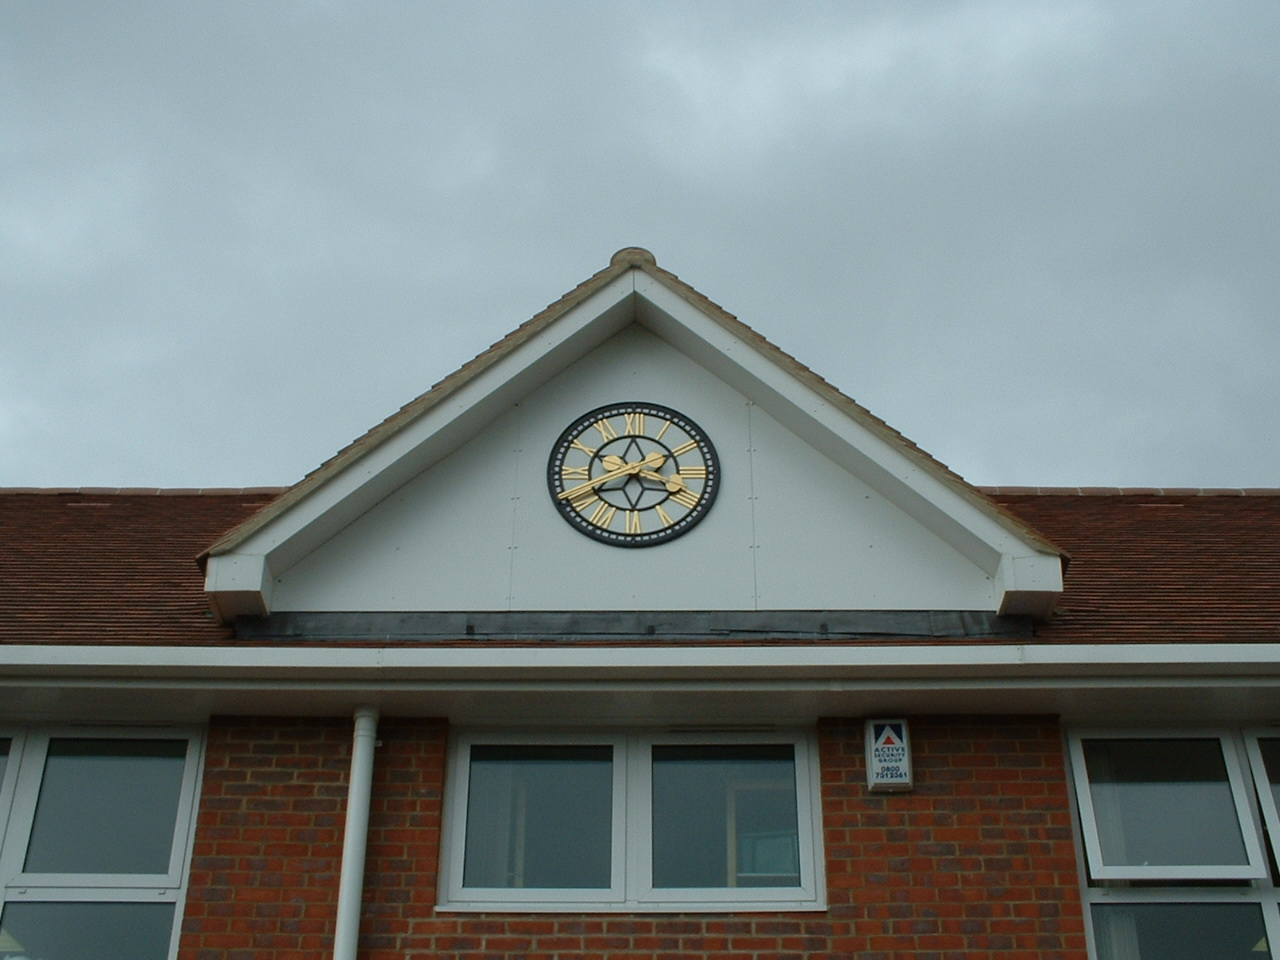 Knutsford School Clock